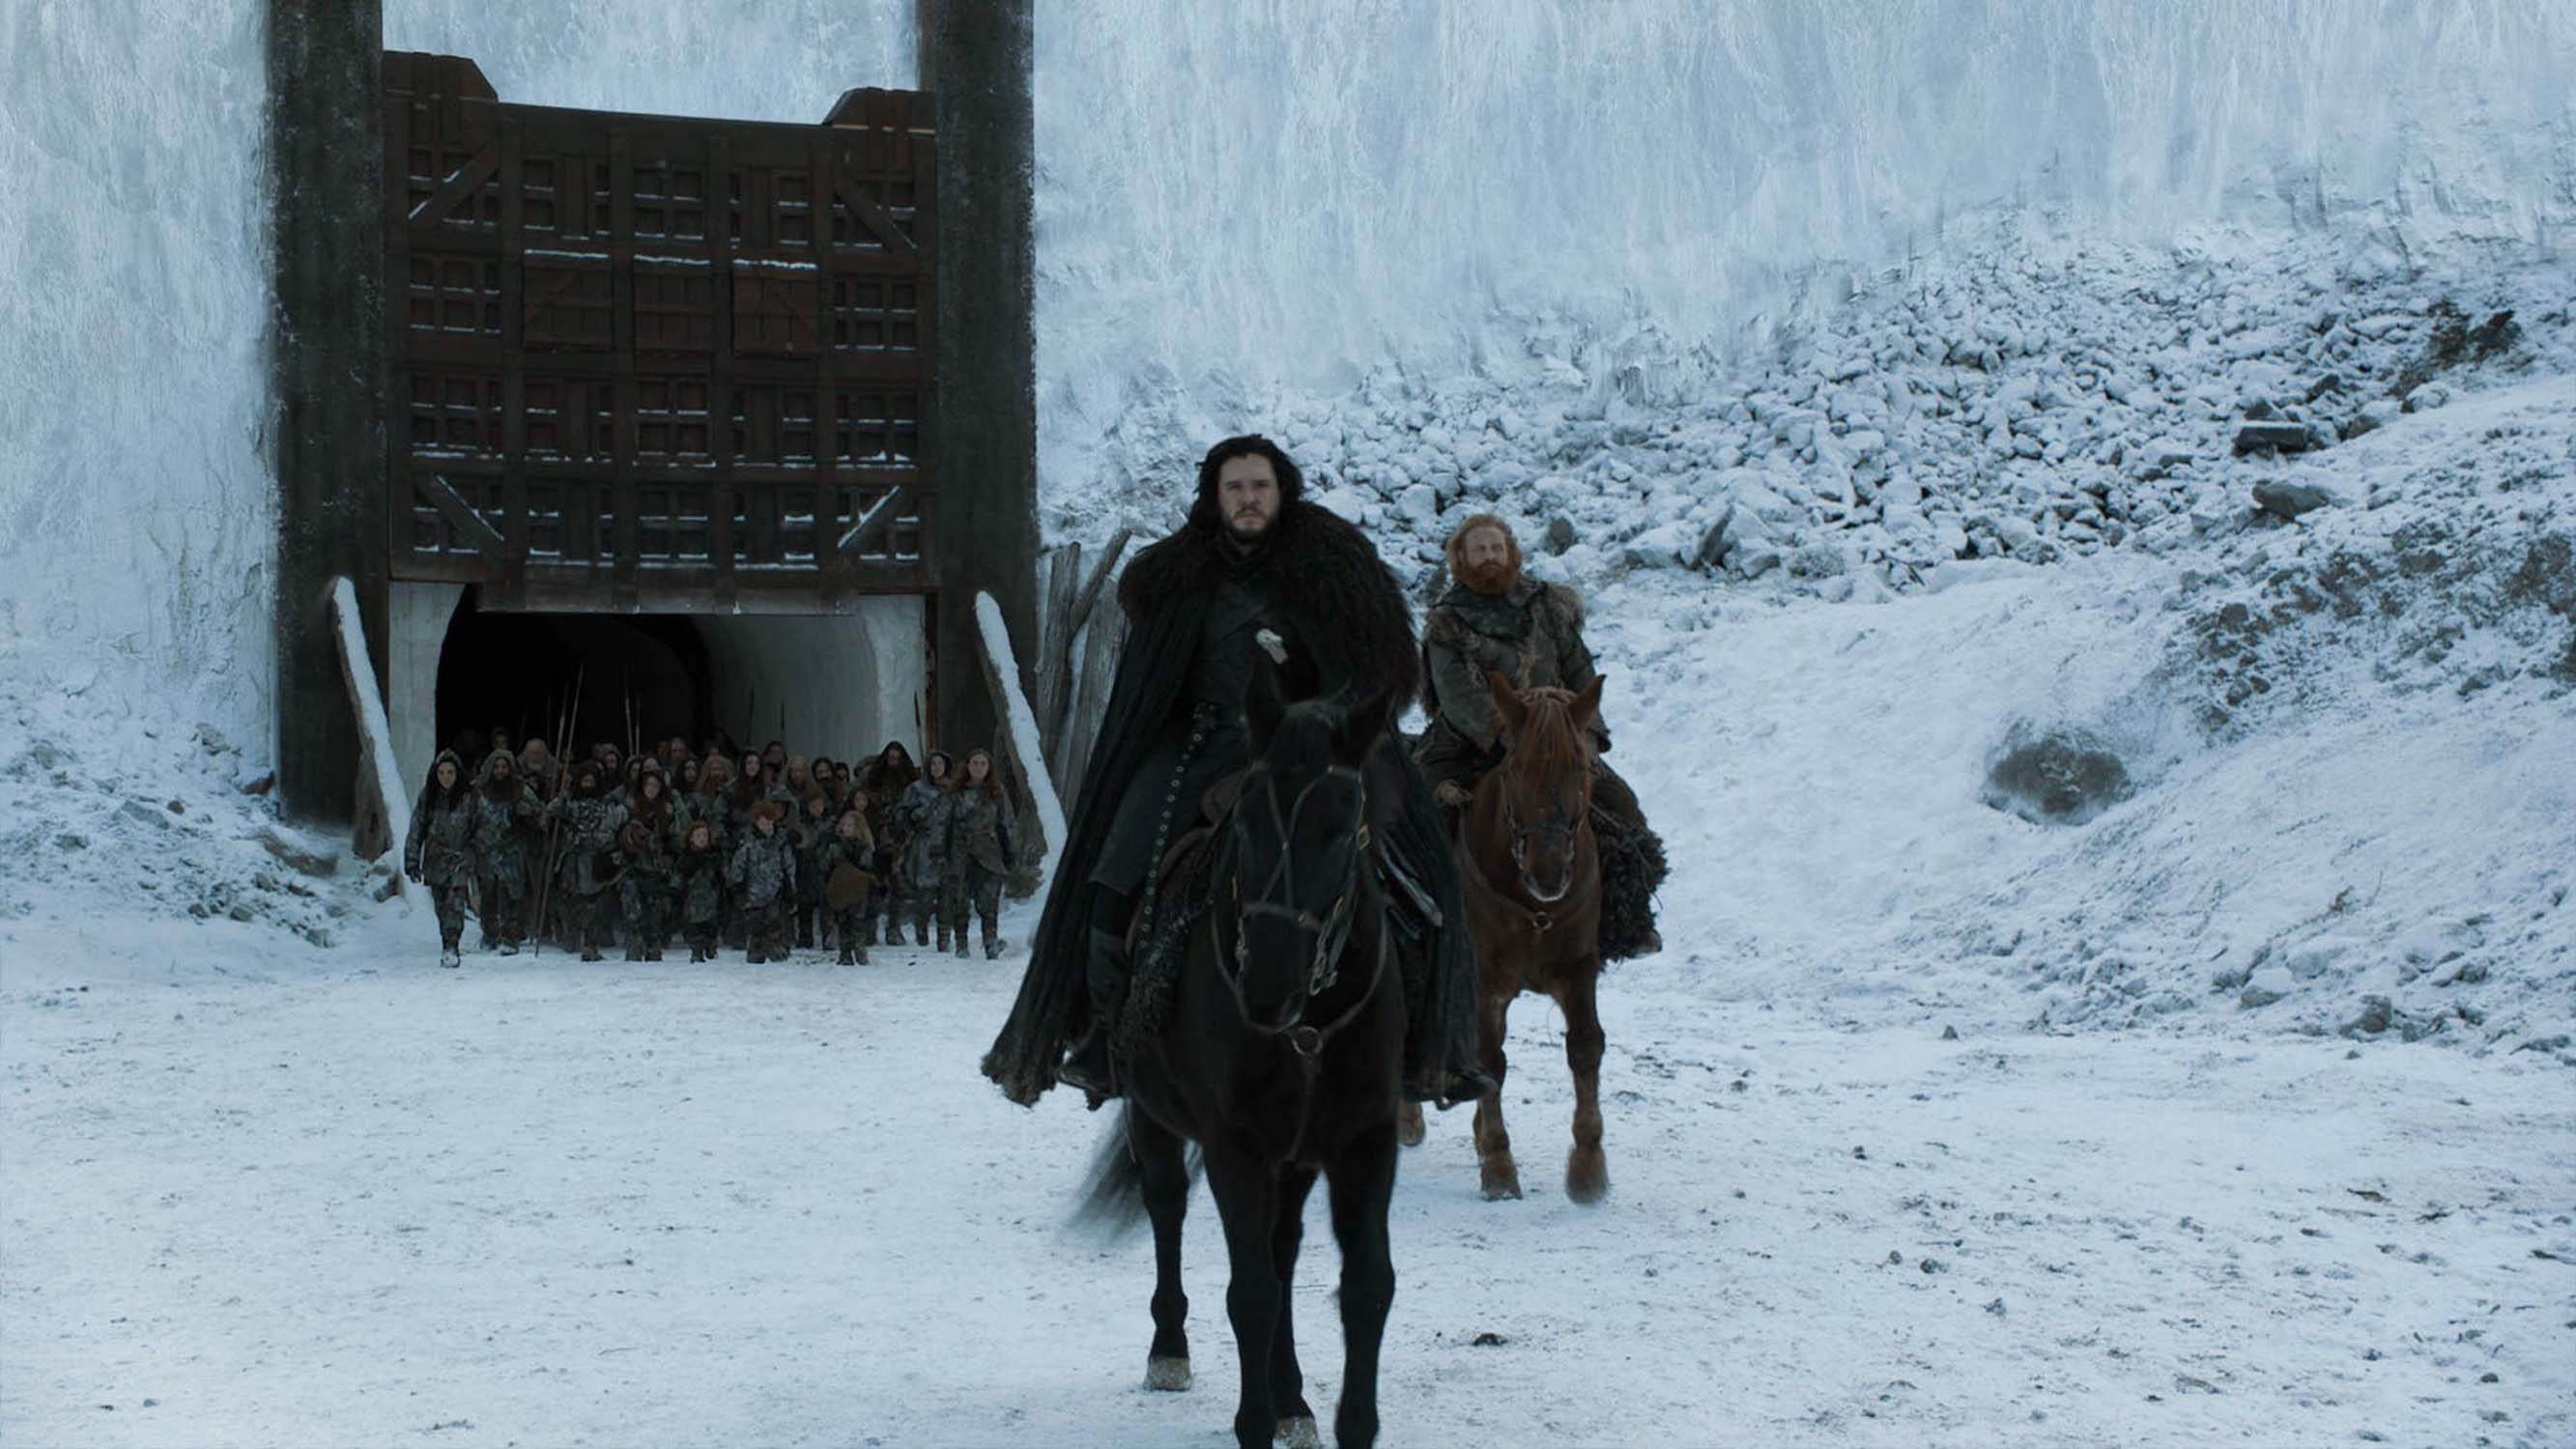 Jon Snow in <em>The Game of Thrones</em>, american series created by David Benioff and D. B. Weiss after G.R.R. Martin's work (2011 à 2019)